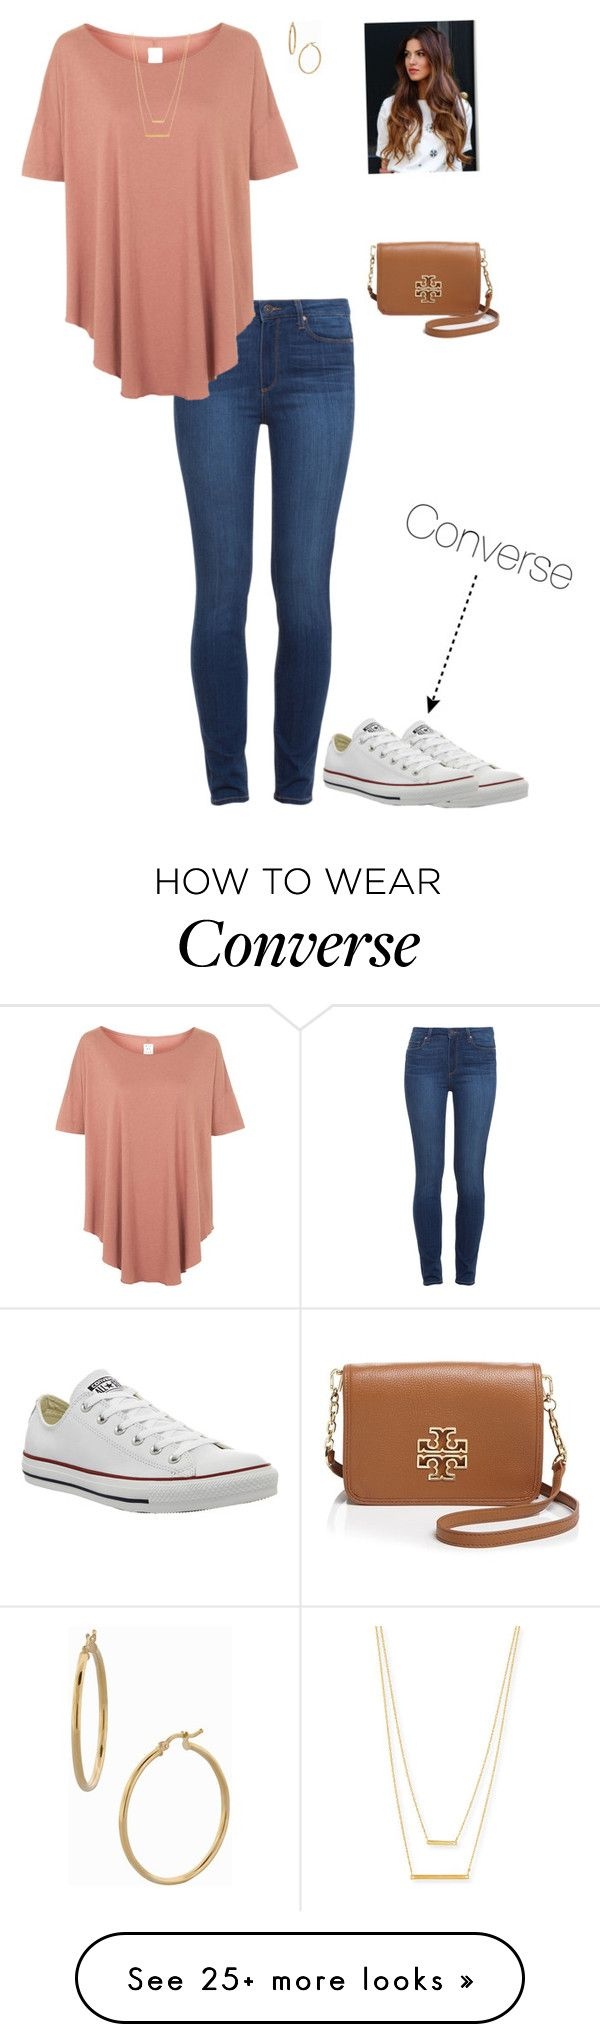 """C Is For Converse"" by preppyygirll on Polyvore featuring Converse, Paige Denim, Topshop, Jennifer Zeuner, Tory Burch and Bony Levy                   …"